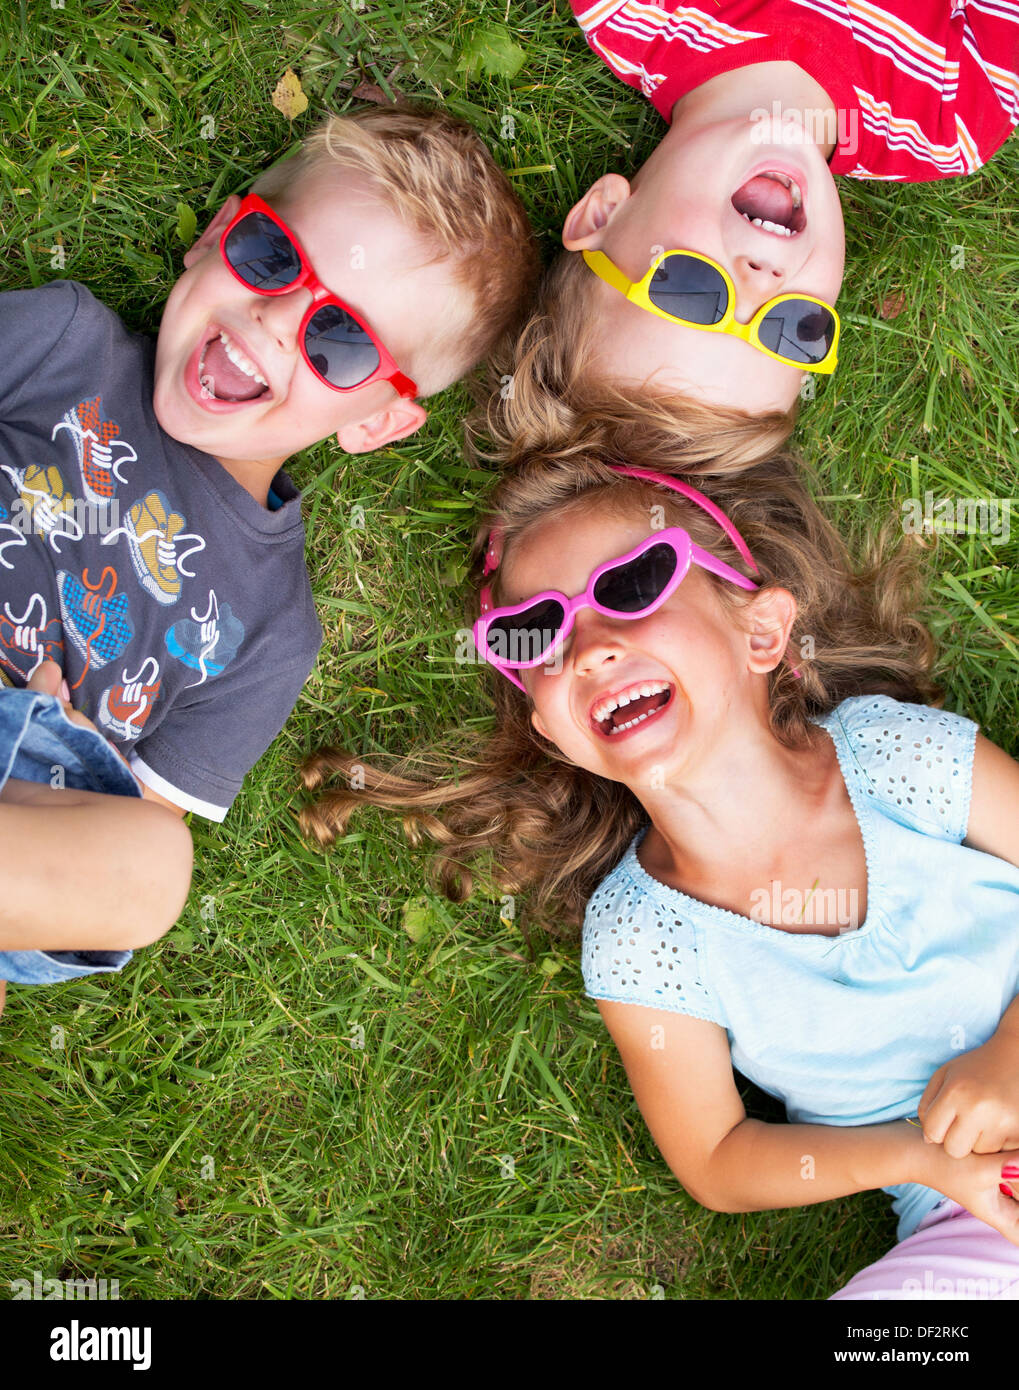 Laughing children relaxing during summer day - Stock Image